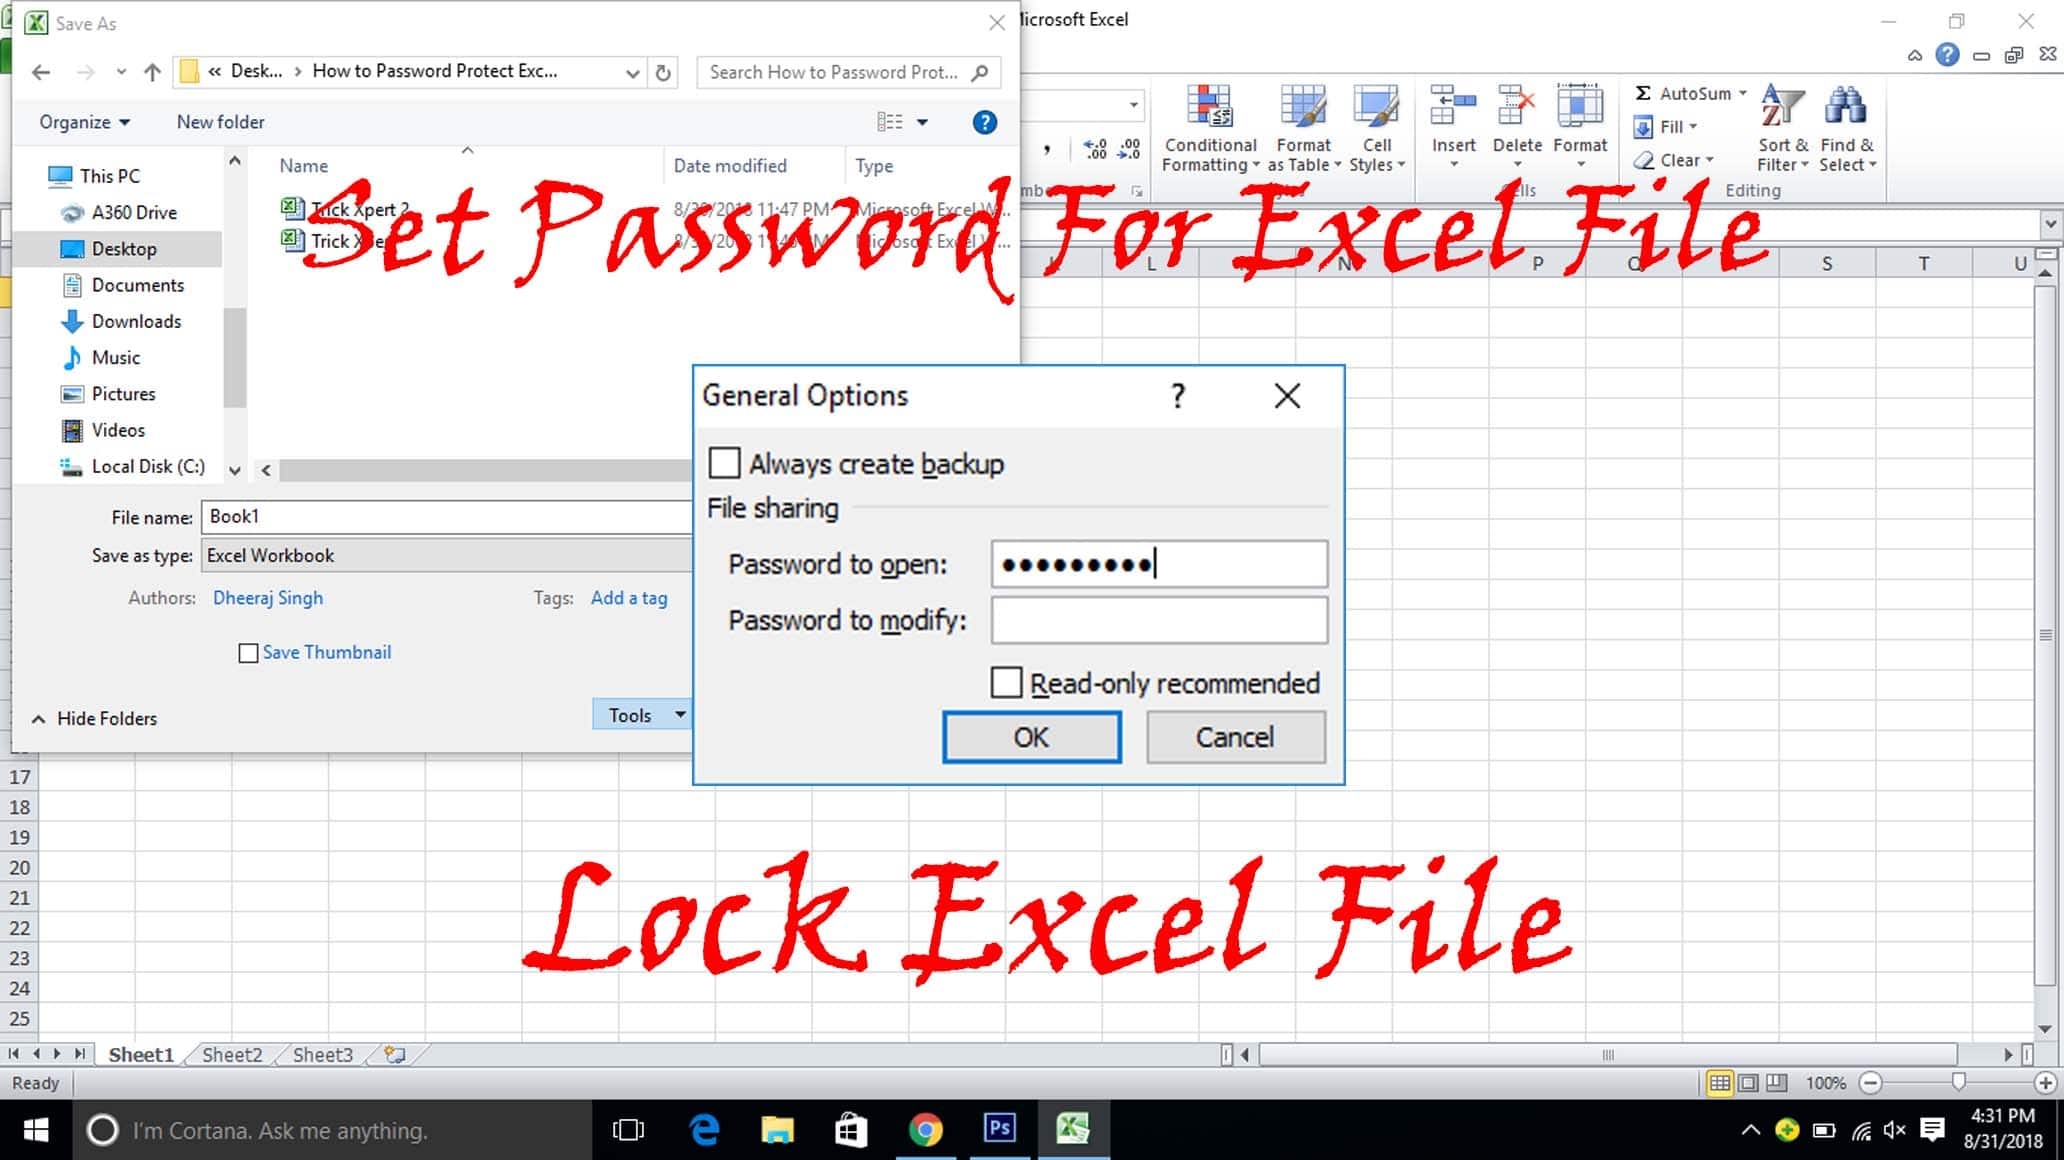 How To Password Protect Excel File (3 Methods) - Trick Xpert